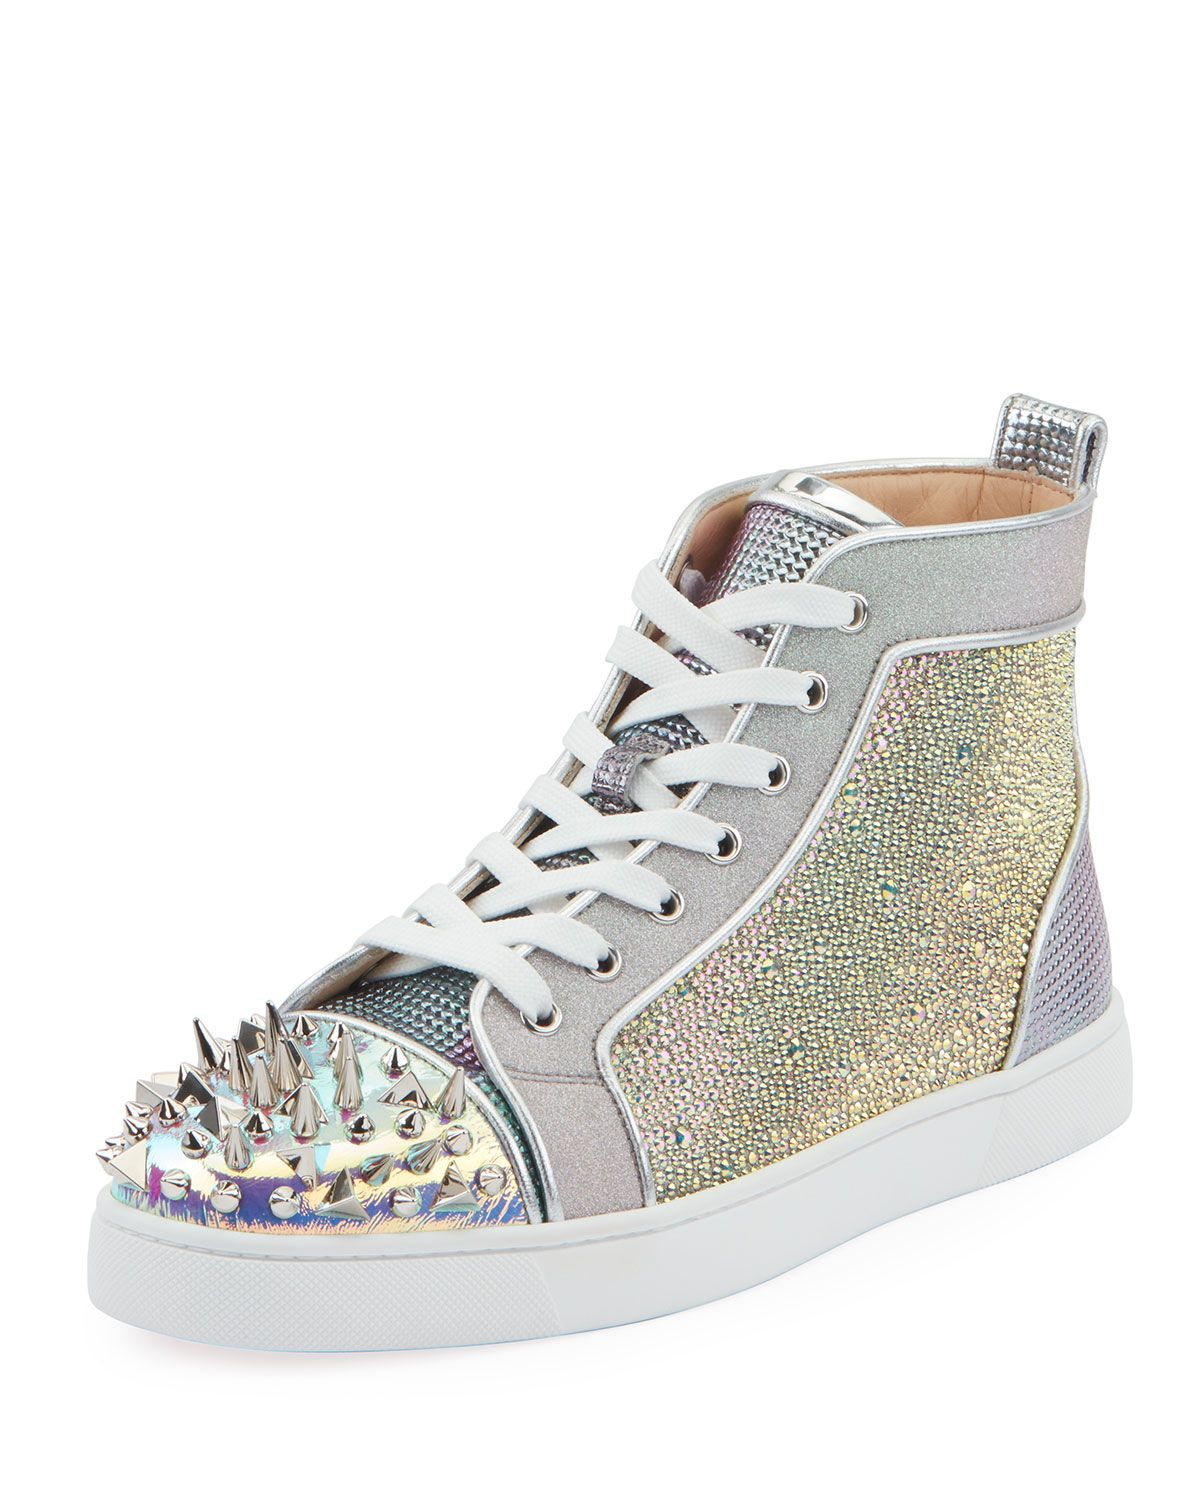 2a070104e46 CHRISTIAN LOUBOUTIN MEN'S LOOX STRASS MIXED-MEDIA MID-TOP SNEAKERS ...